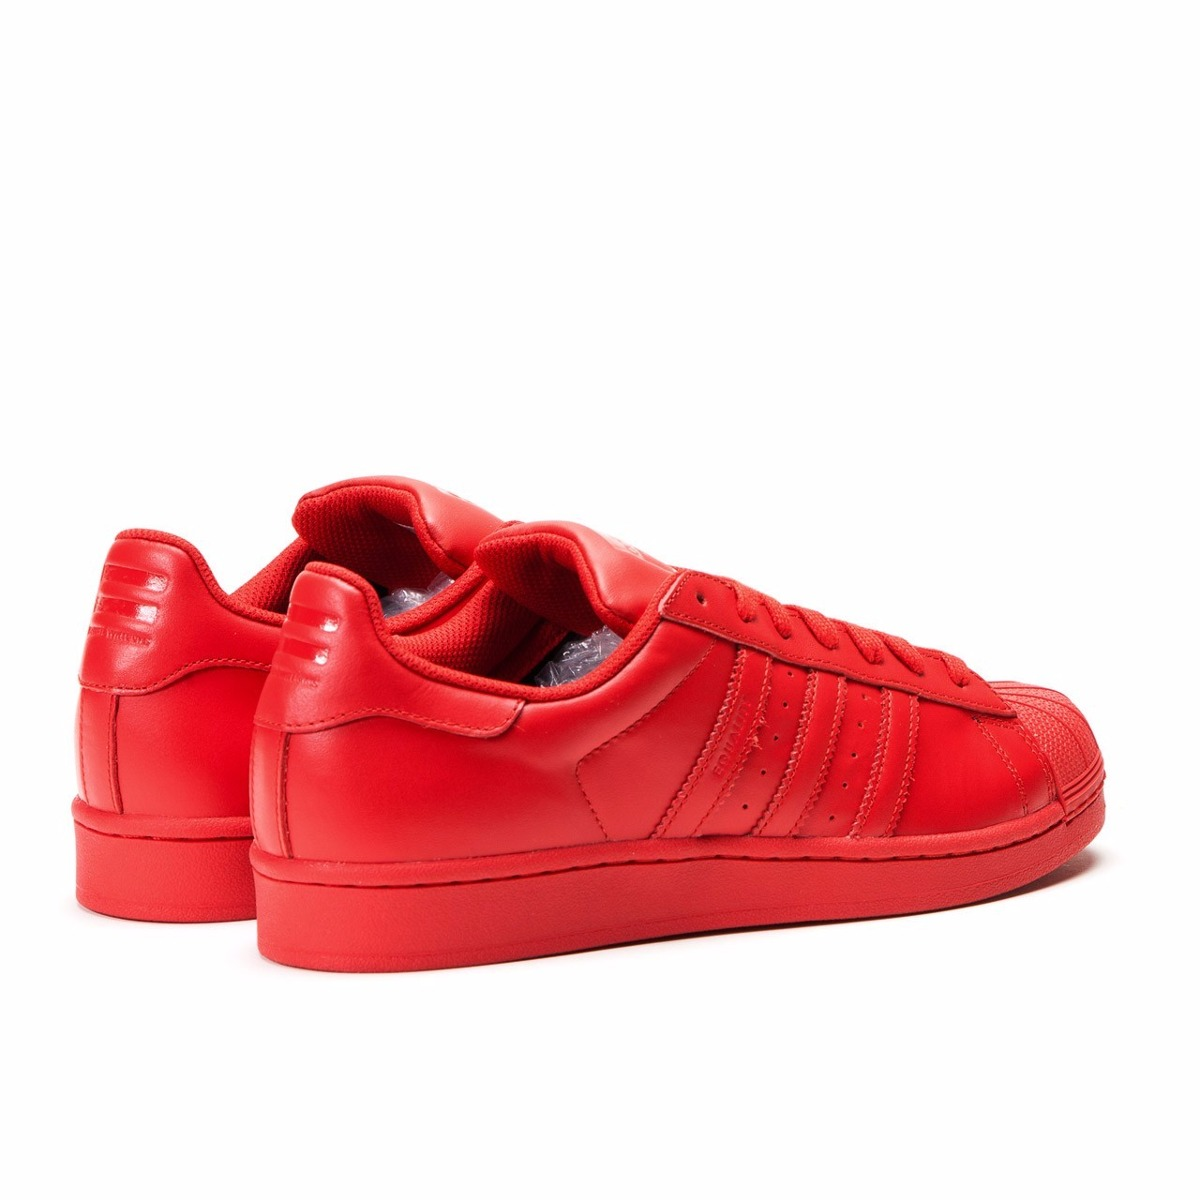 low priced 178bd fa7fe ... sweden zapatillas adidas superstar supercolor mujer original. cargando  zoom. 5f974 80257